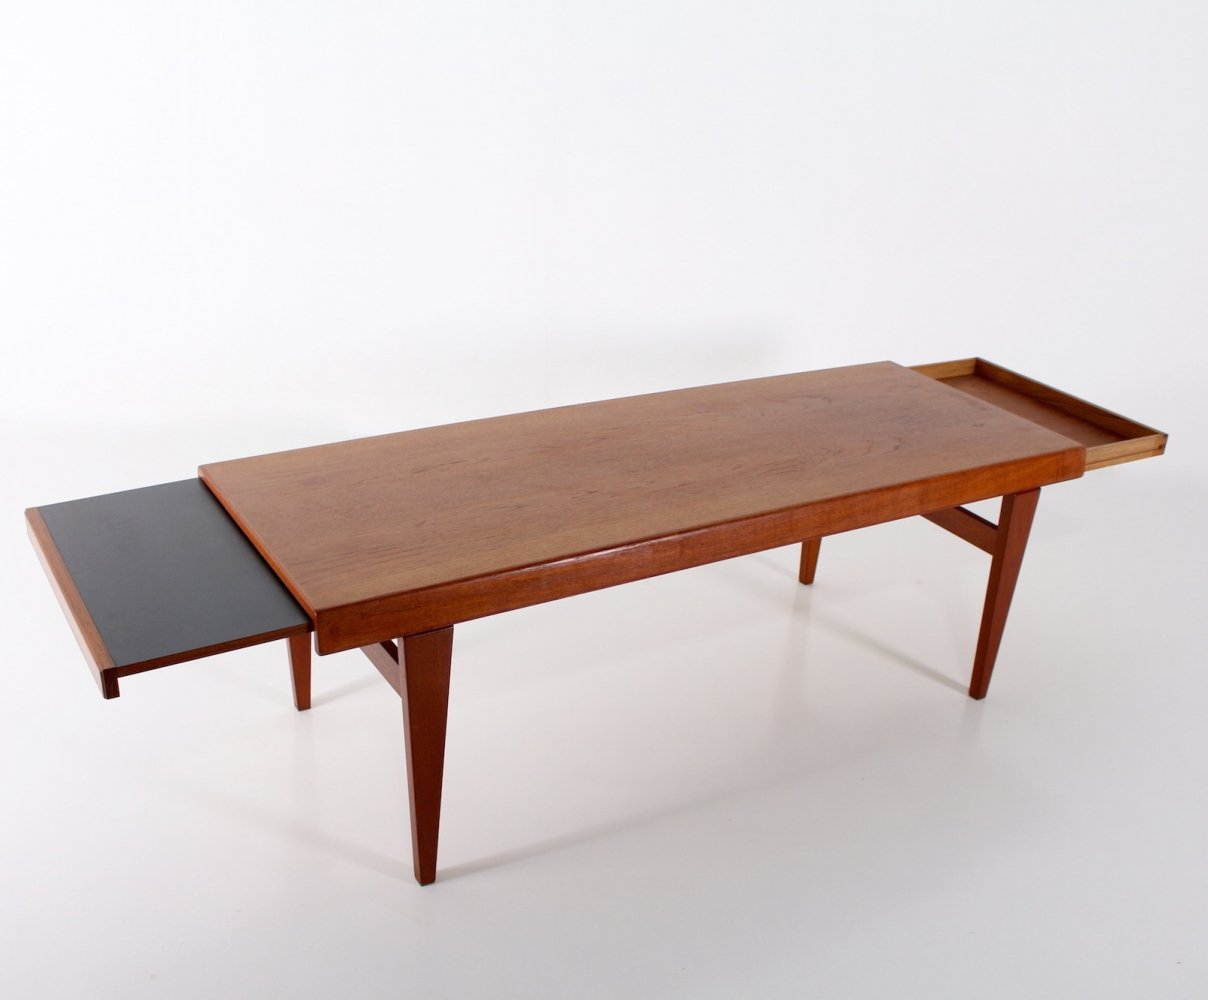 Teak danish retractable coffee table by Niels Bach, 1960